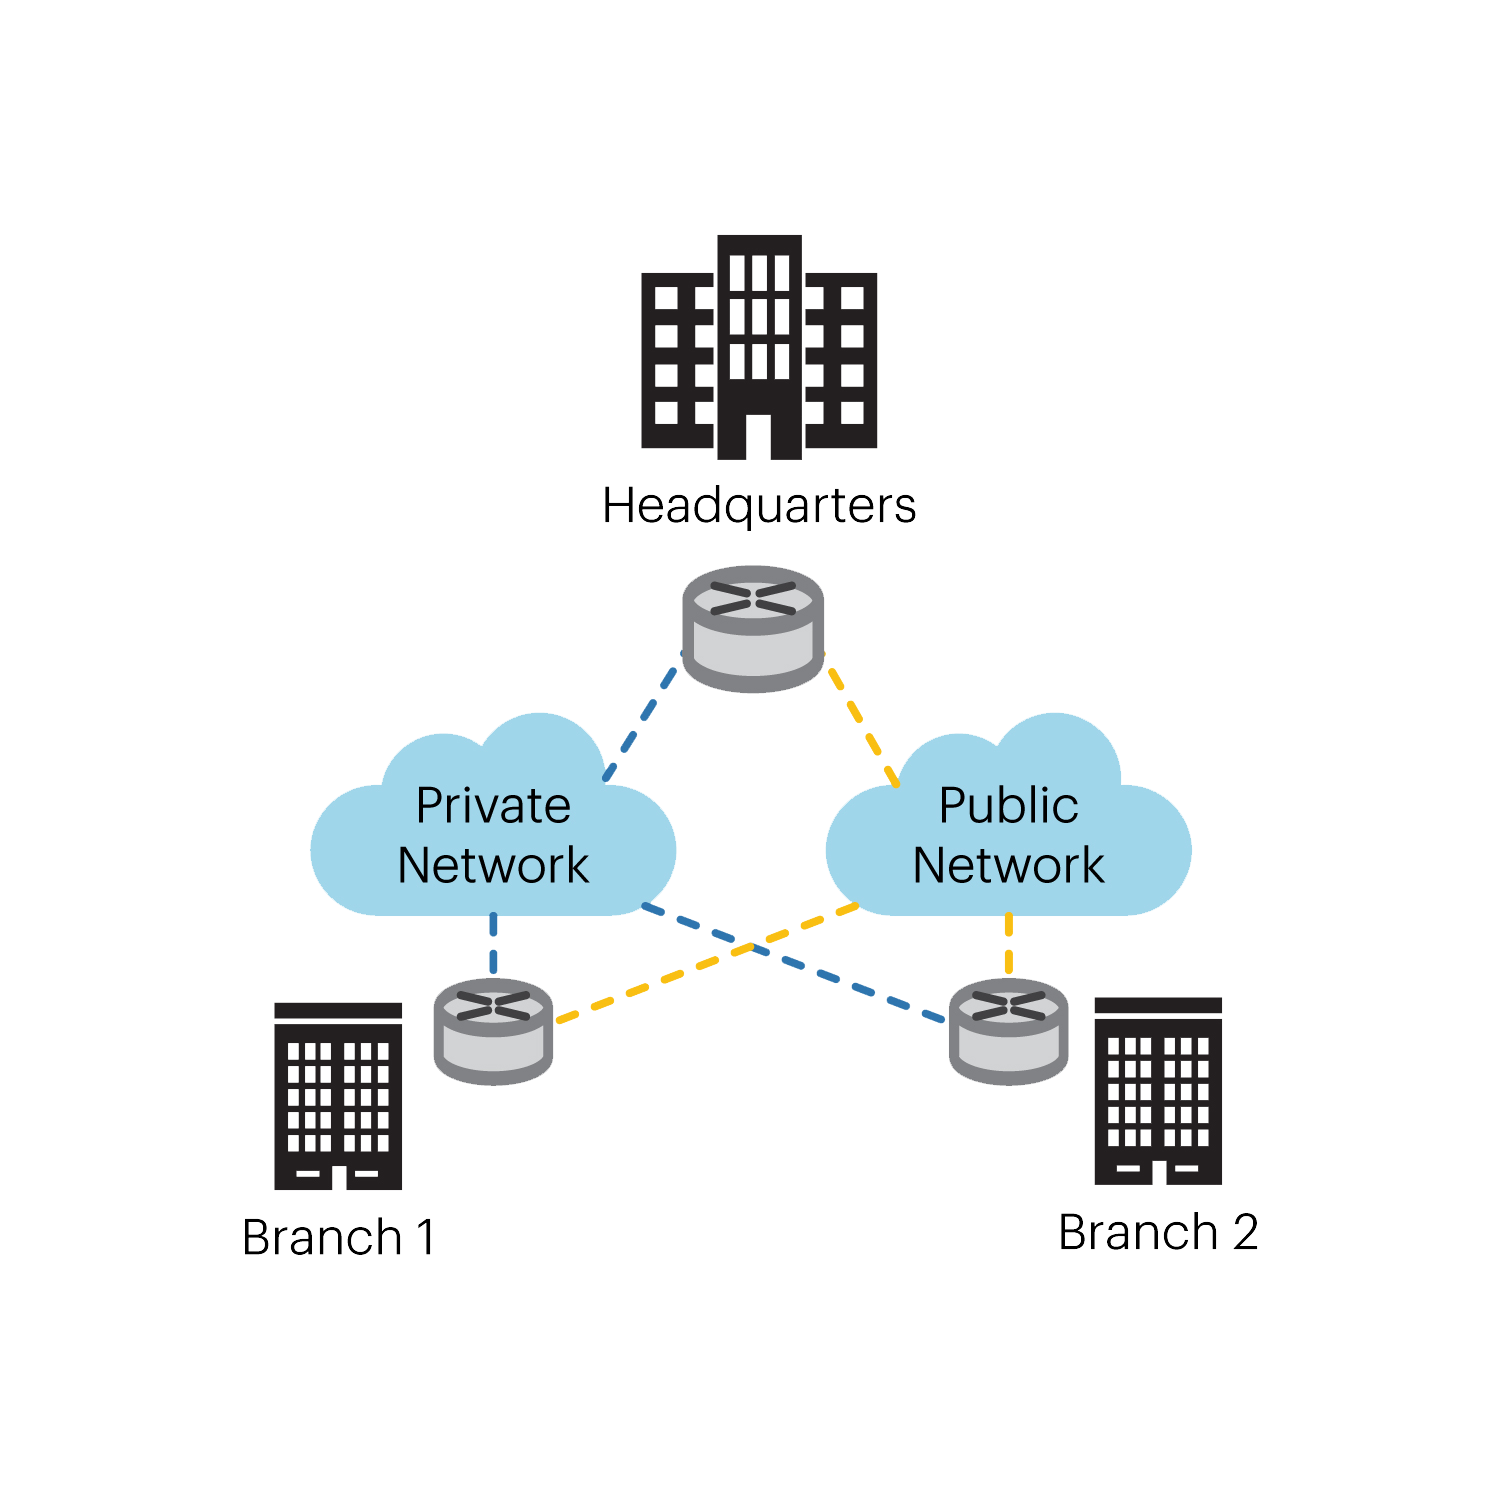 A diagram detailing an SD-WAN topography